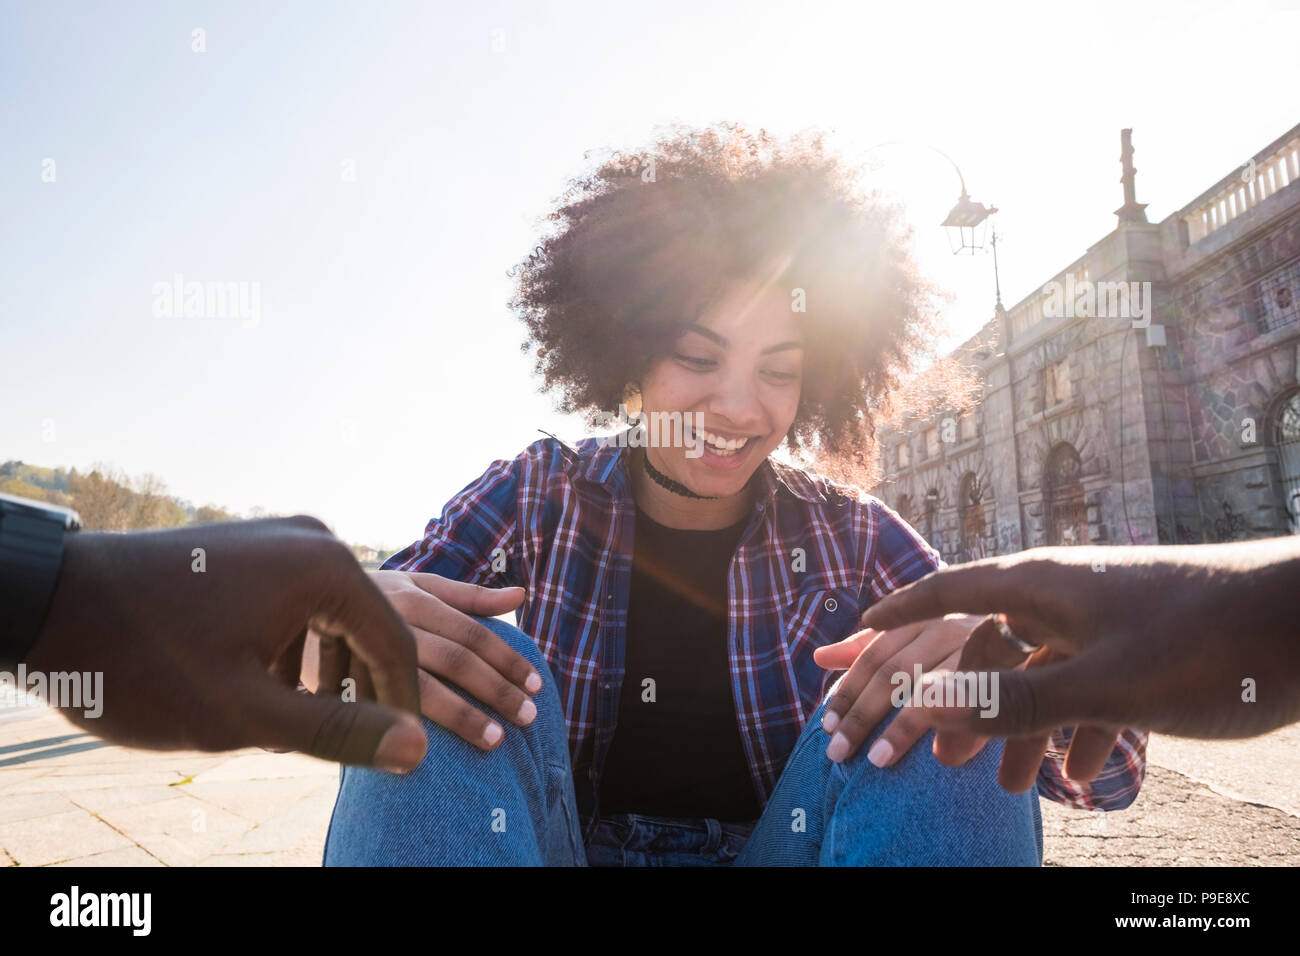 beautiful nice black race ethnic hair gyoung girl have fun with a african man smiling and laughing with him. happy people at the city. backlight and s - Stock Image